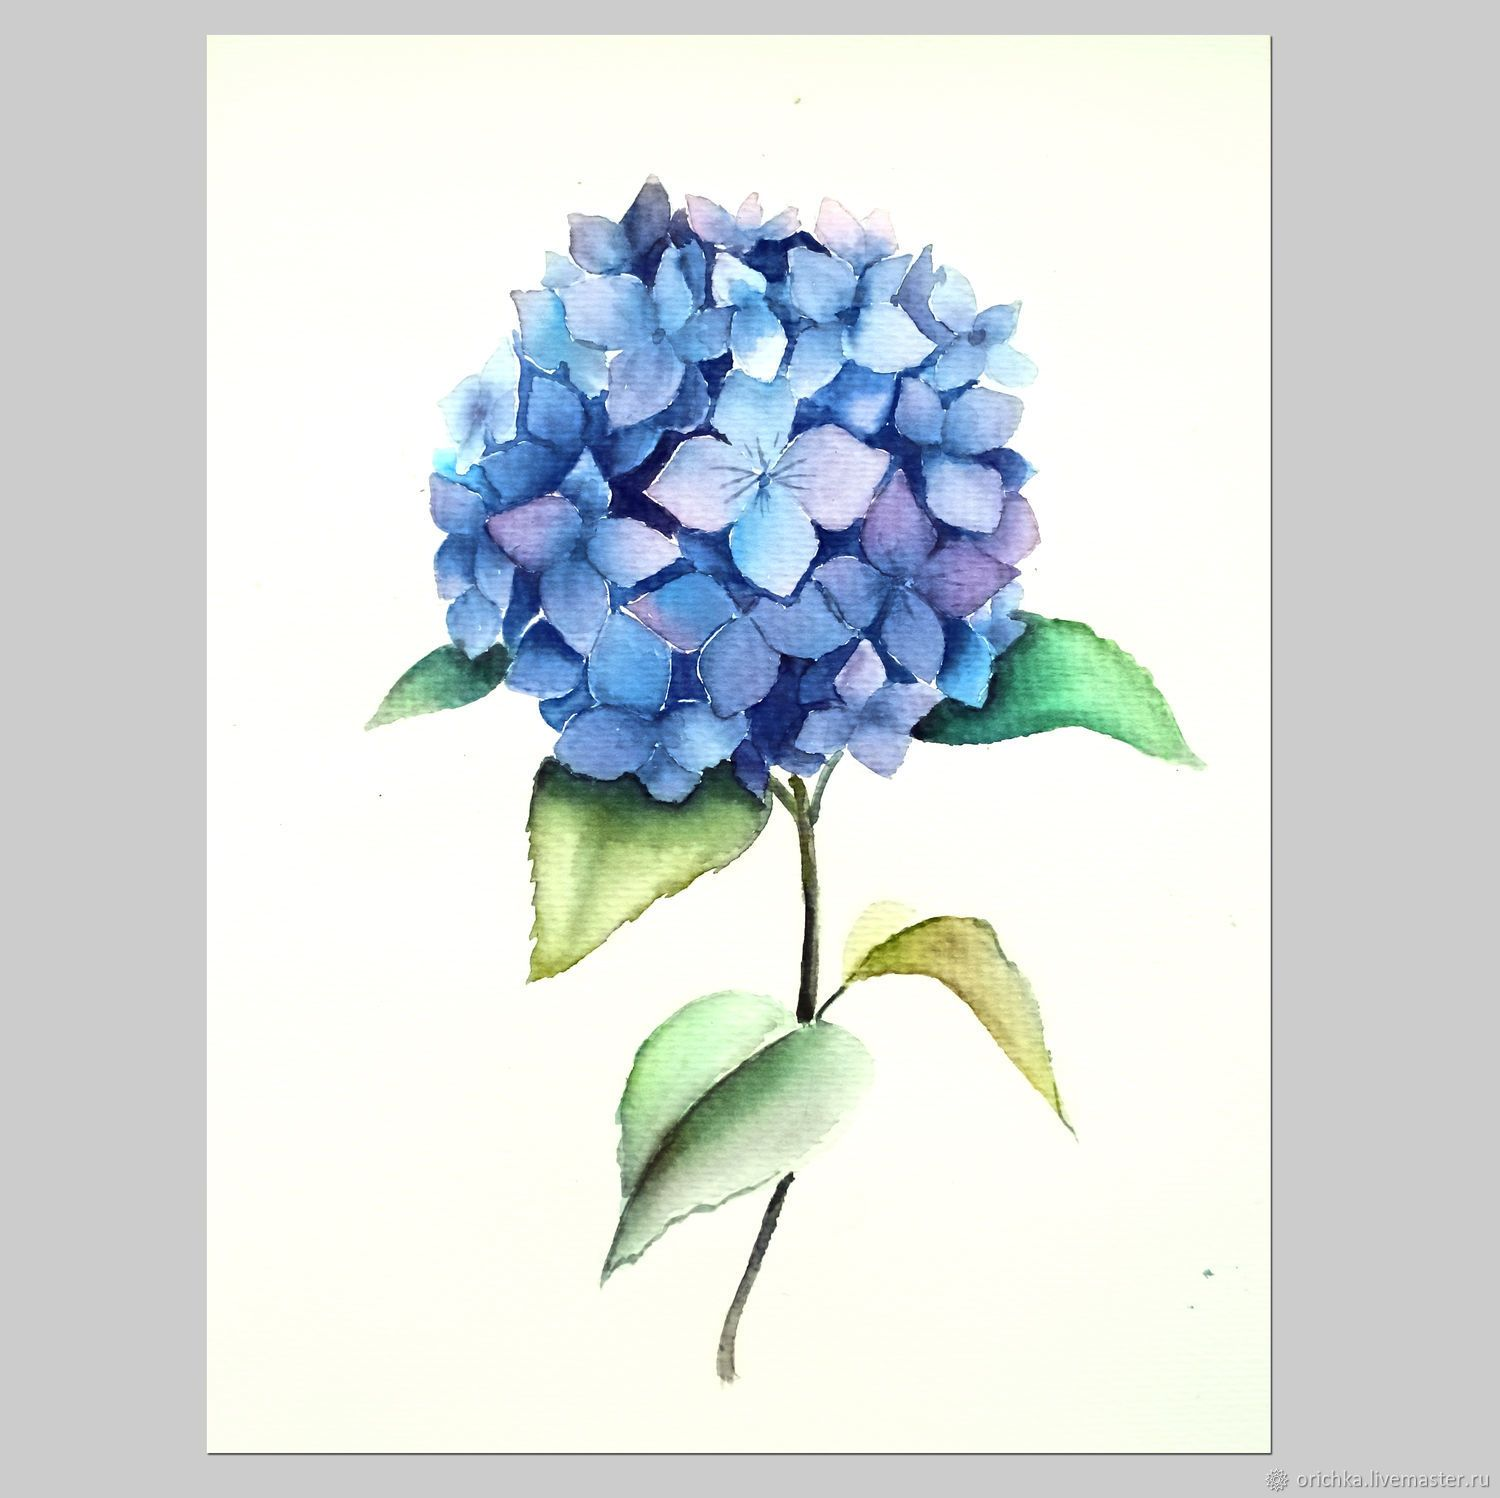 Painting Watercolor Hydrangea Shop Online On Livemaster With Shipping F2xnxcom Novosibirsk Watercolor Hydrangea Blue Flower Painting Flower Drawing